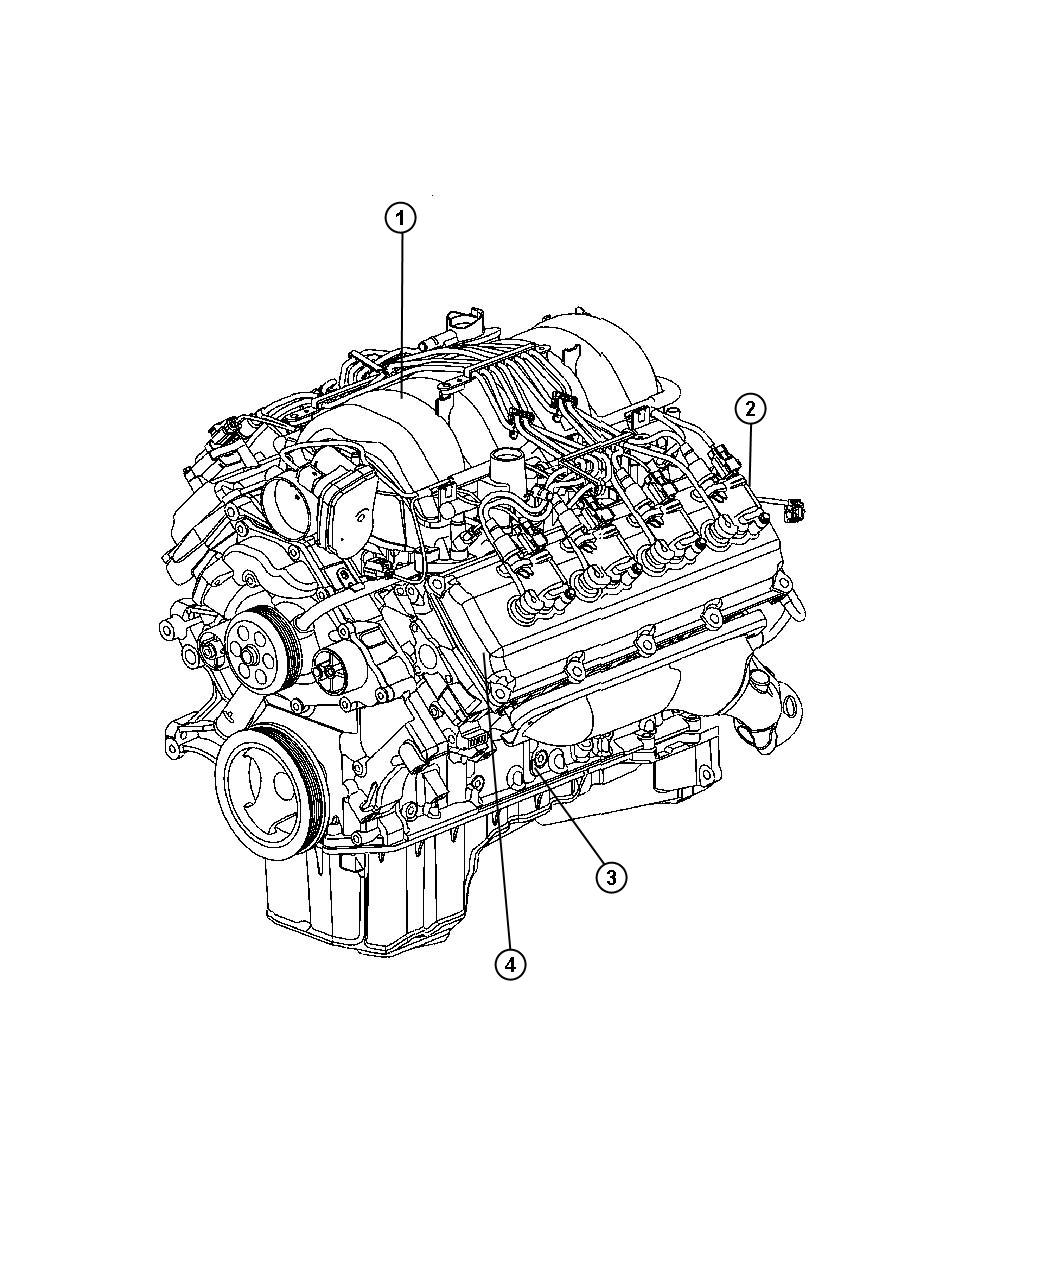 Dodge Charger Engine Assembly And Identification 5.7L [EZB]